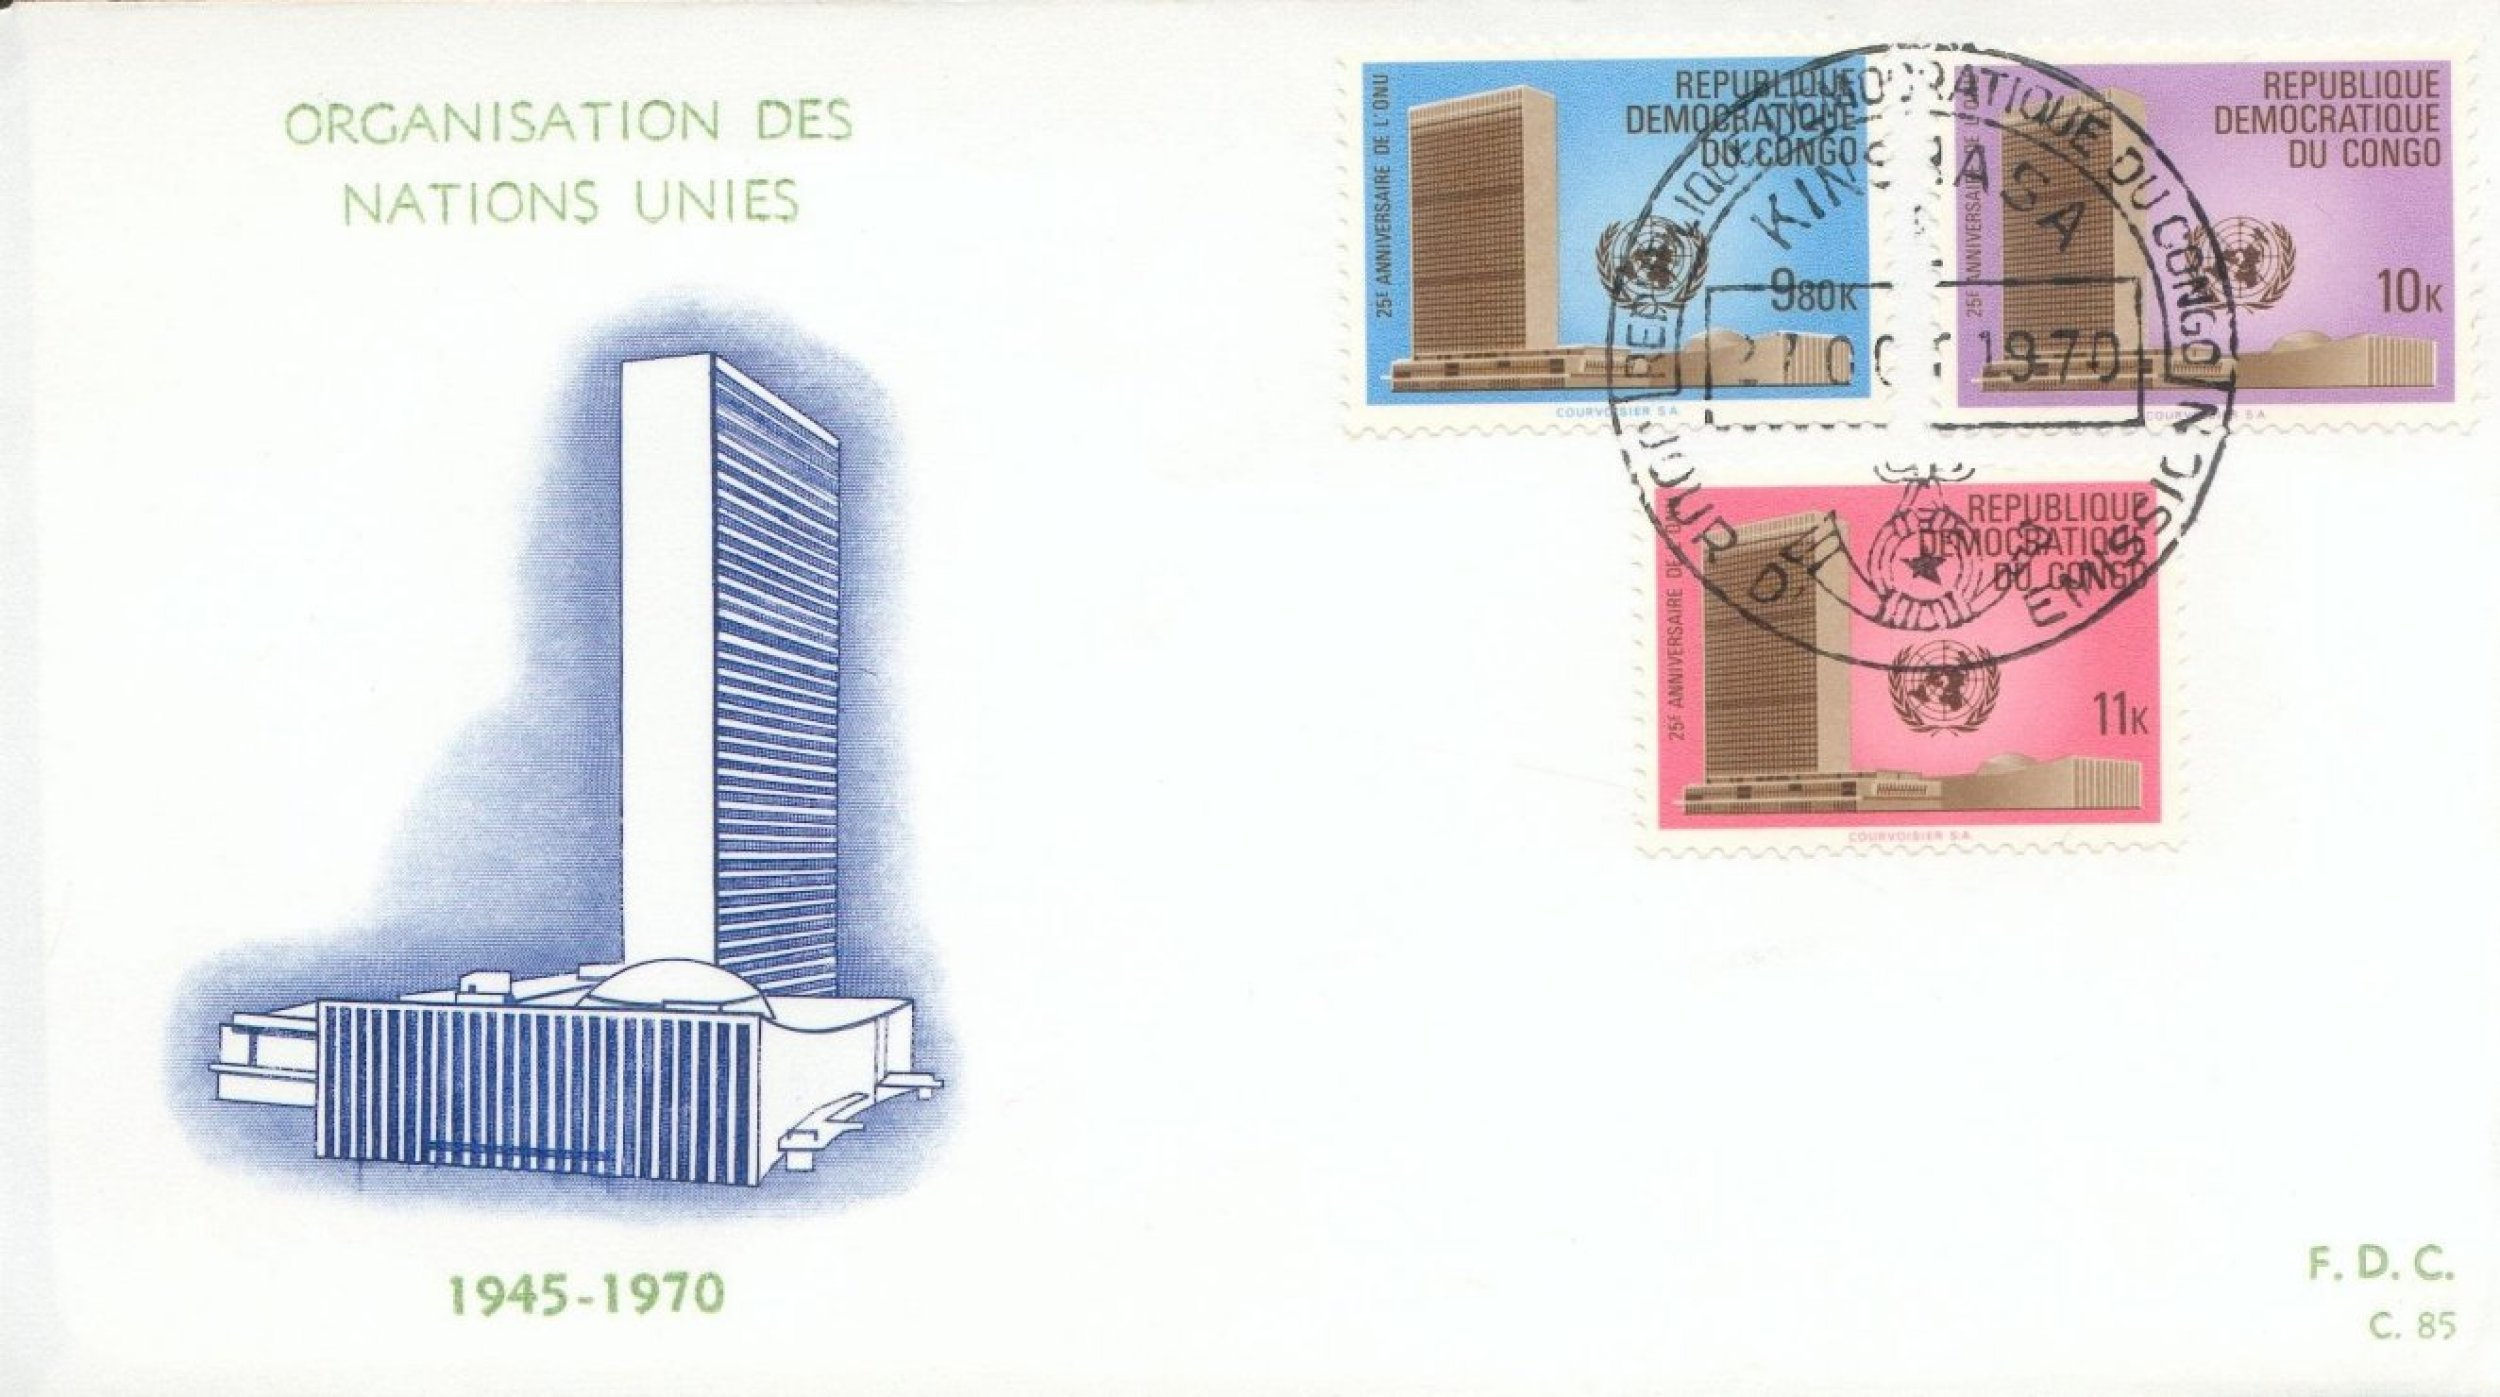 FDC C85